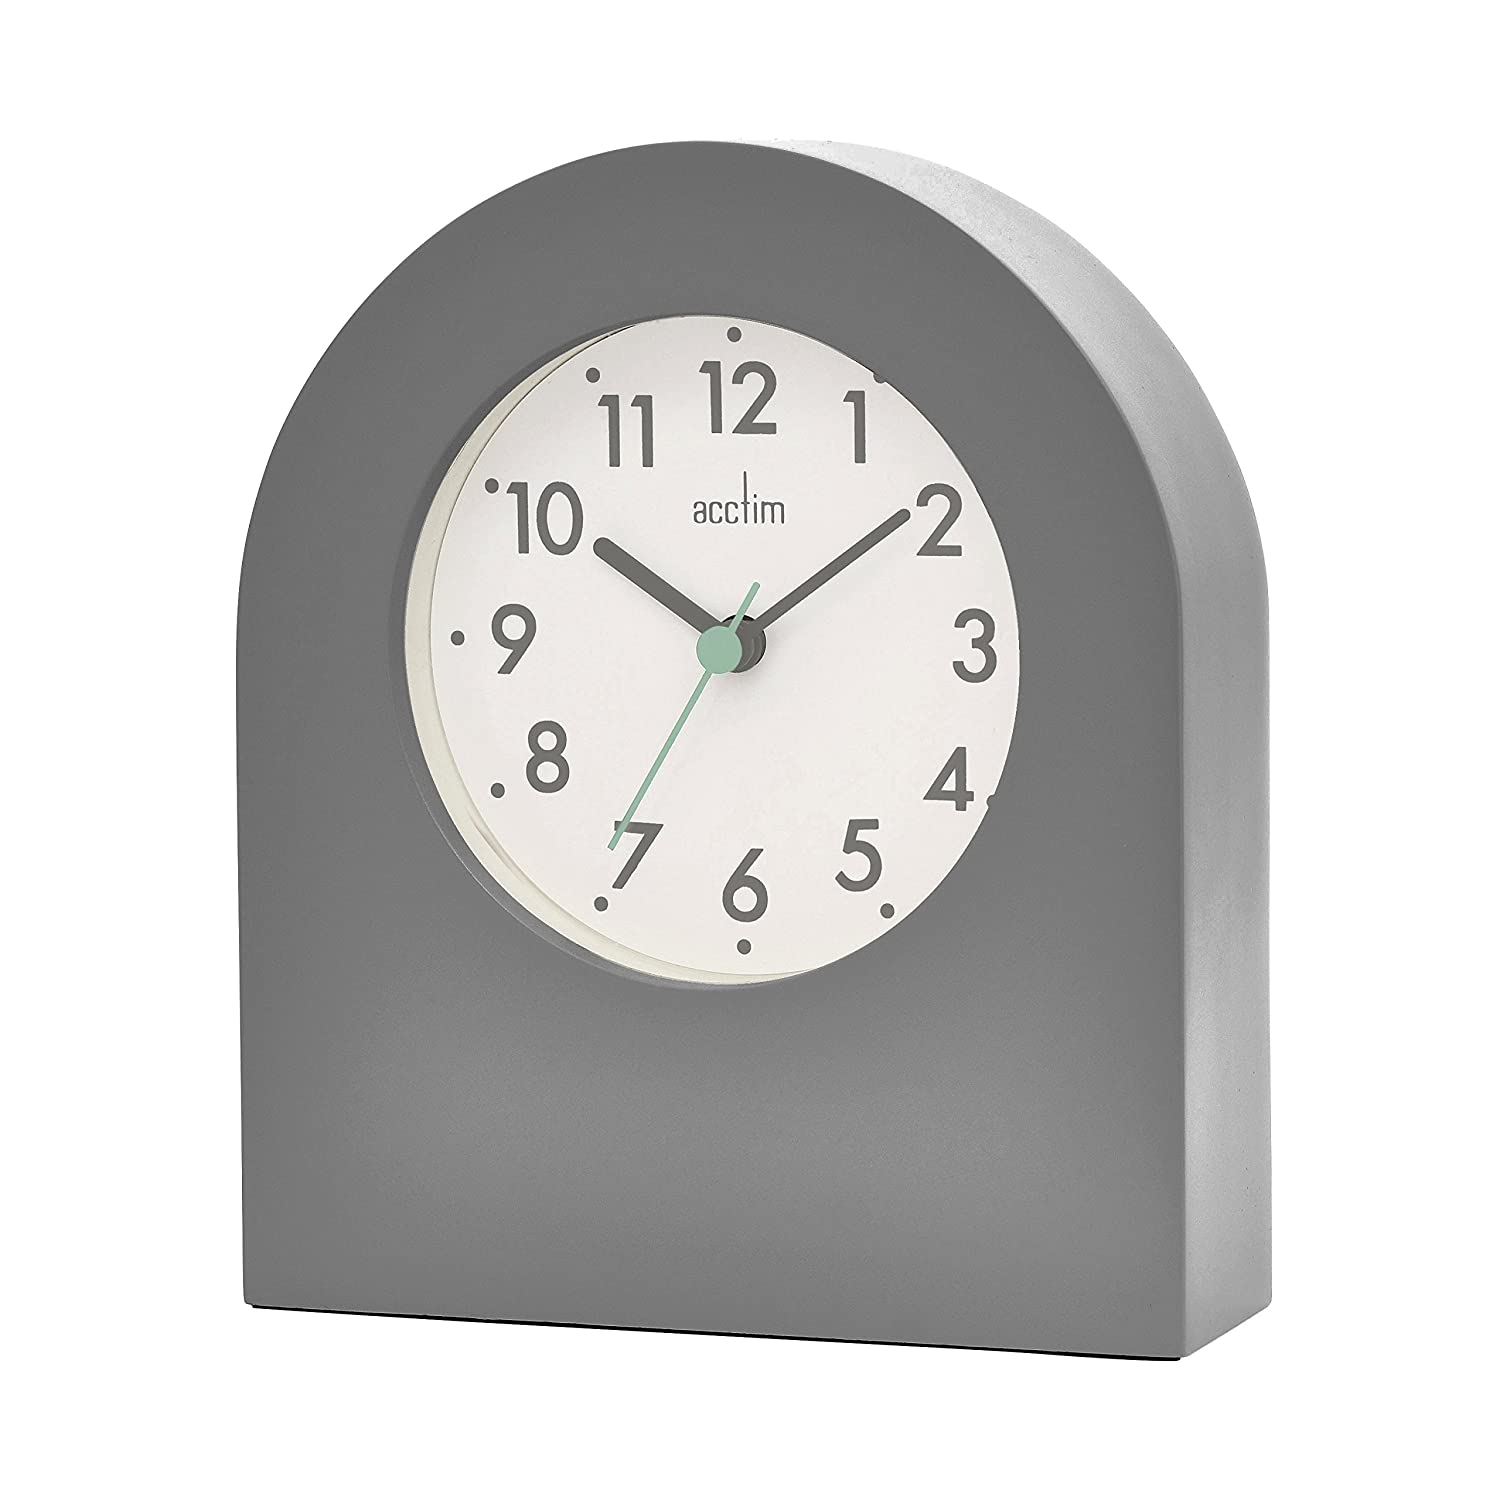 New Acctim 33742 Brondby Arch Table Clock in White